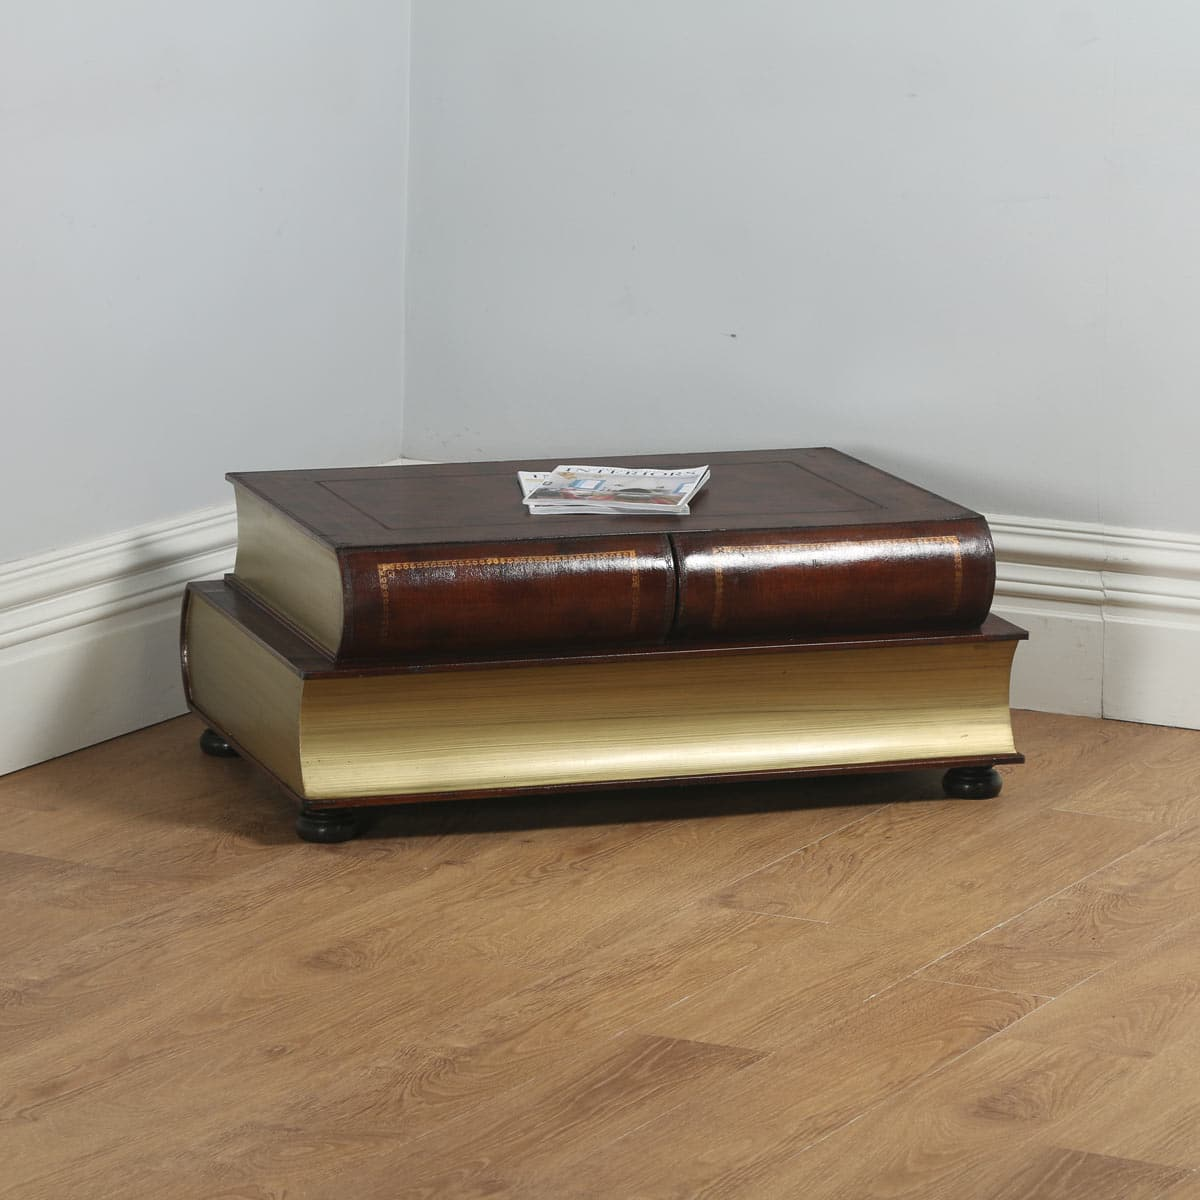 Vintage English Brown Leather Double Book Form Shaped Coffee